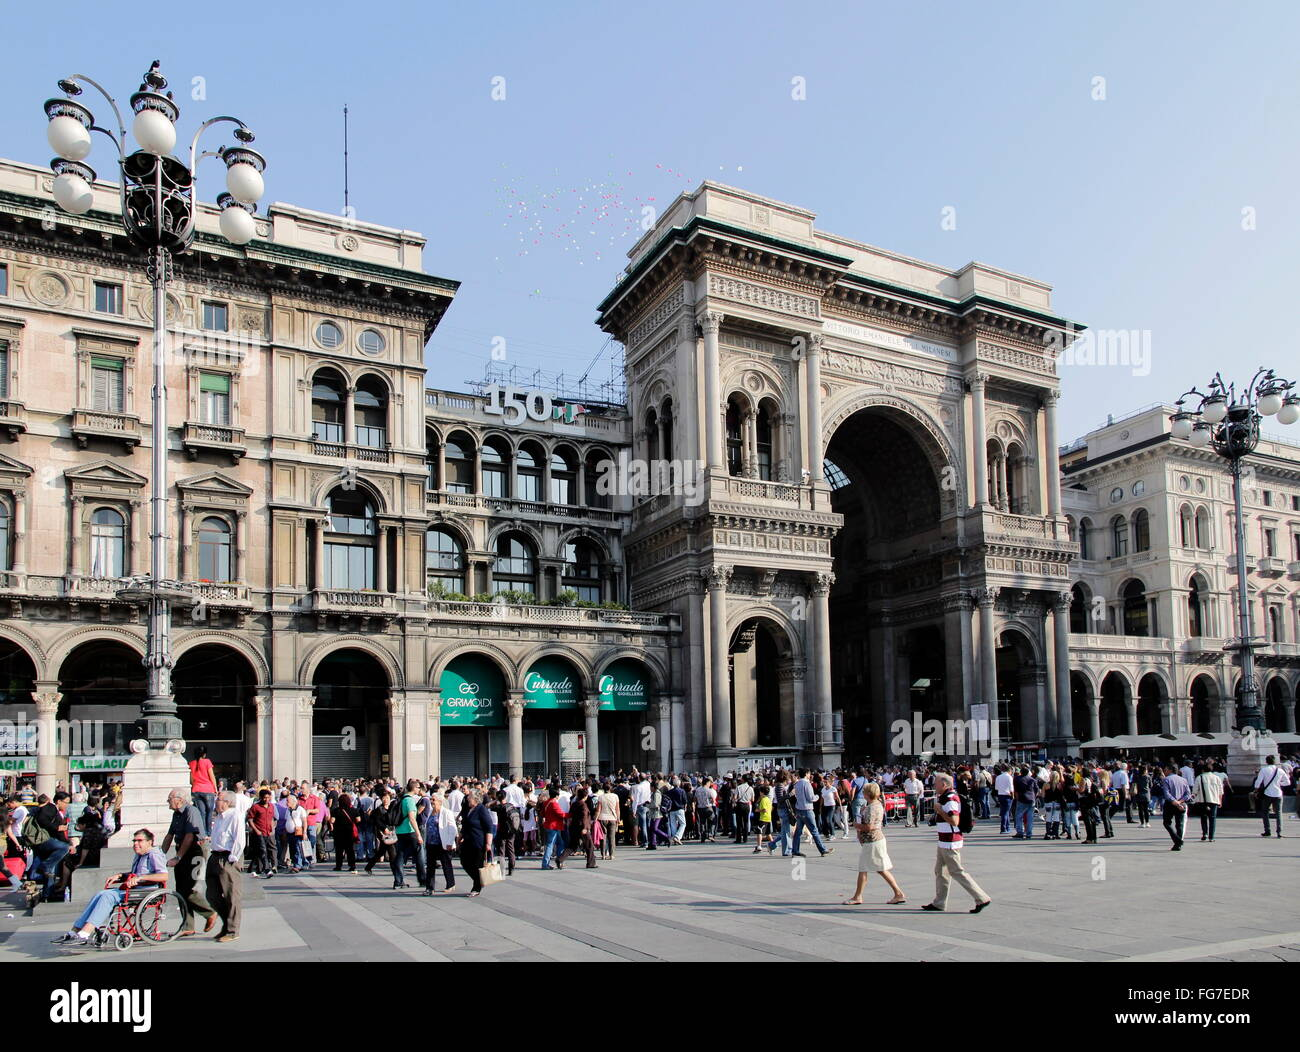 geography / travel, Italy, Lombardy, Milan, Piazza del Duomo, cathedral square, Galleria Vittorio Emanuele II, Additional - Stock Image